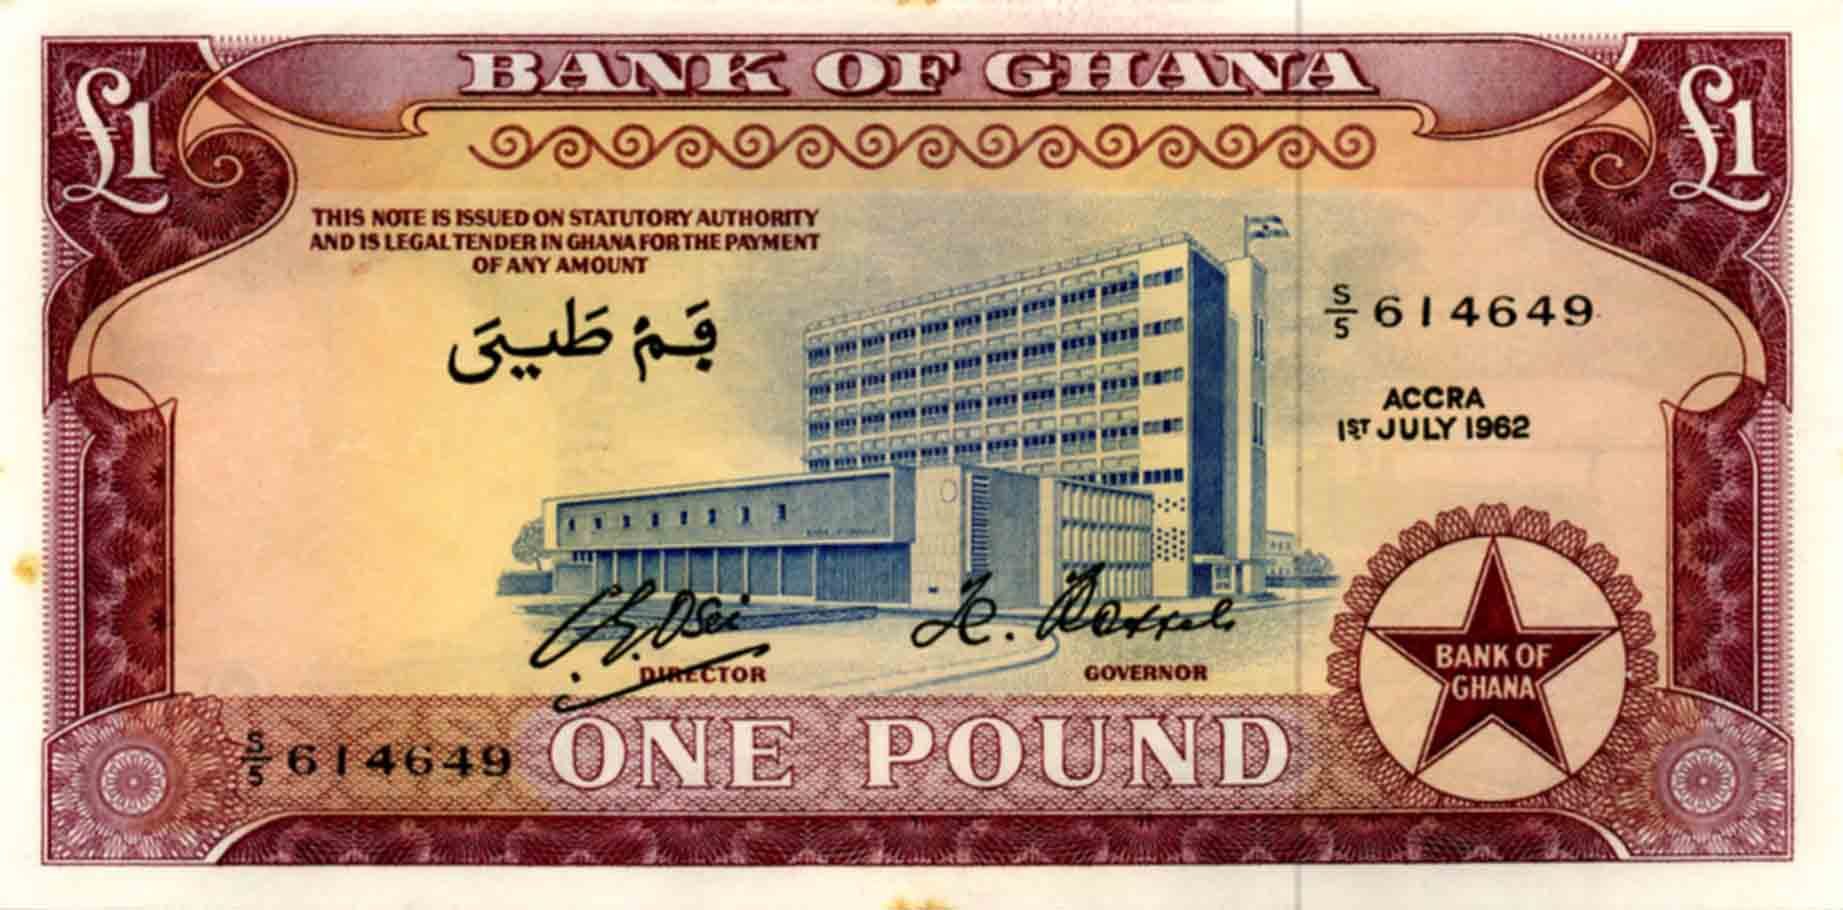 Bank of Ghana Building in